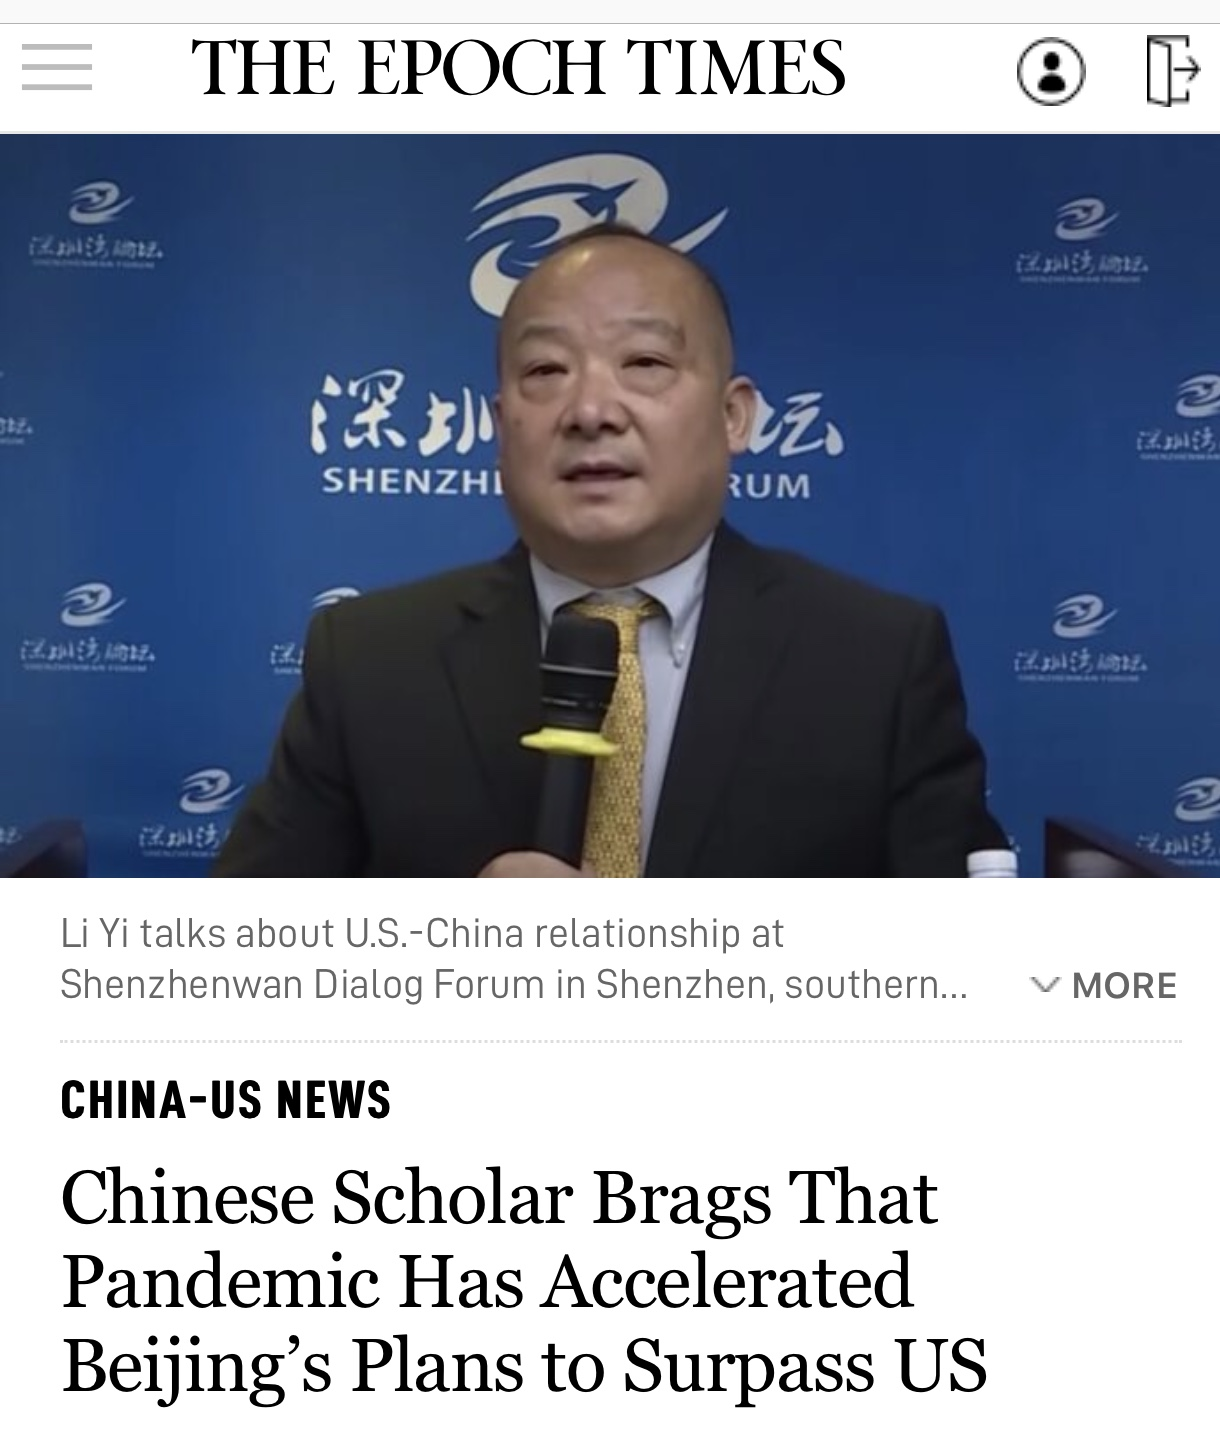 Breaking News Chinese Scholar Brags That Pandemic Has Accelerated Beijing's Plans to Surpass US